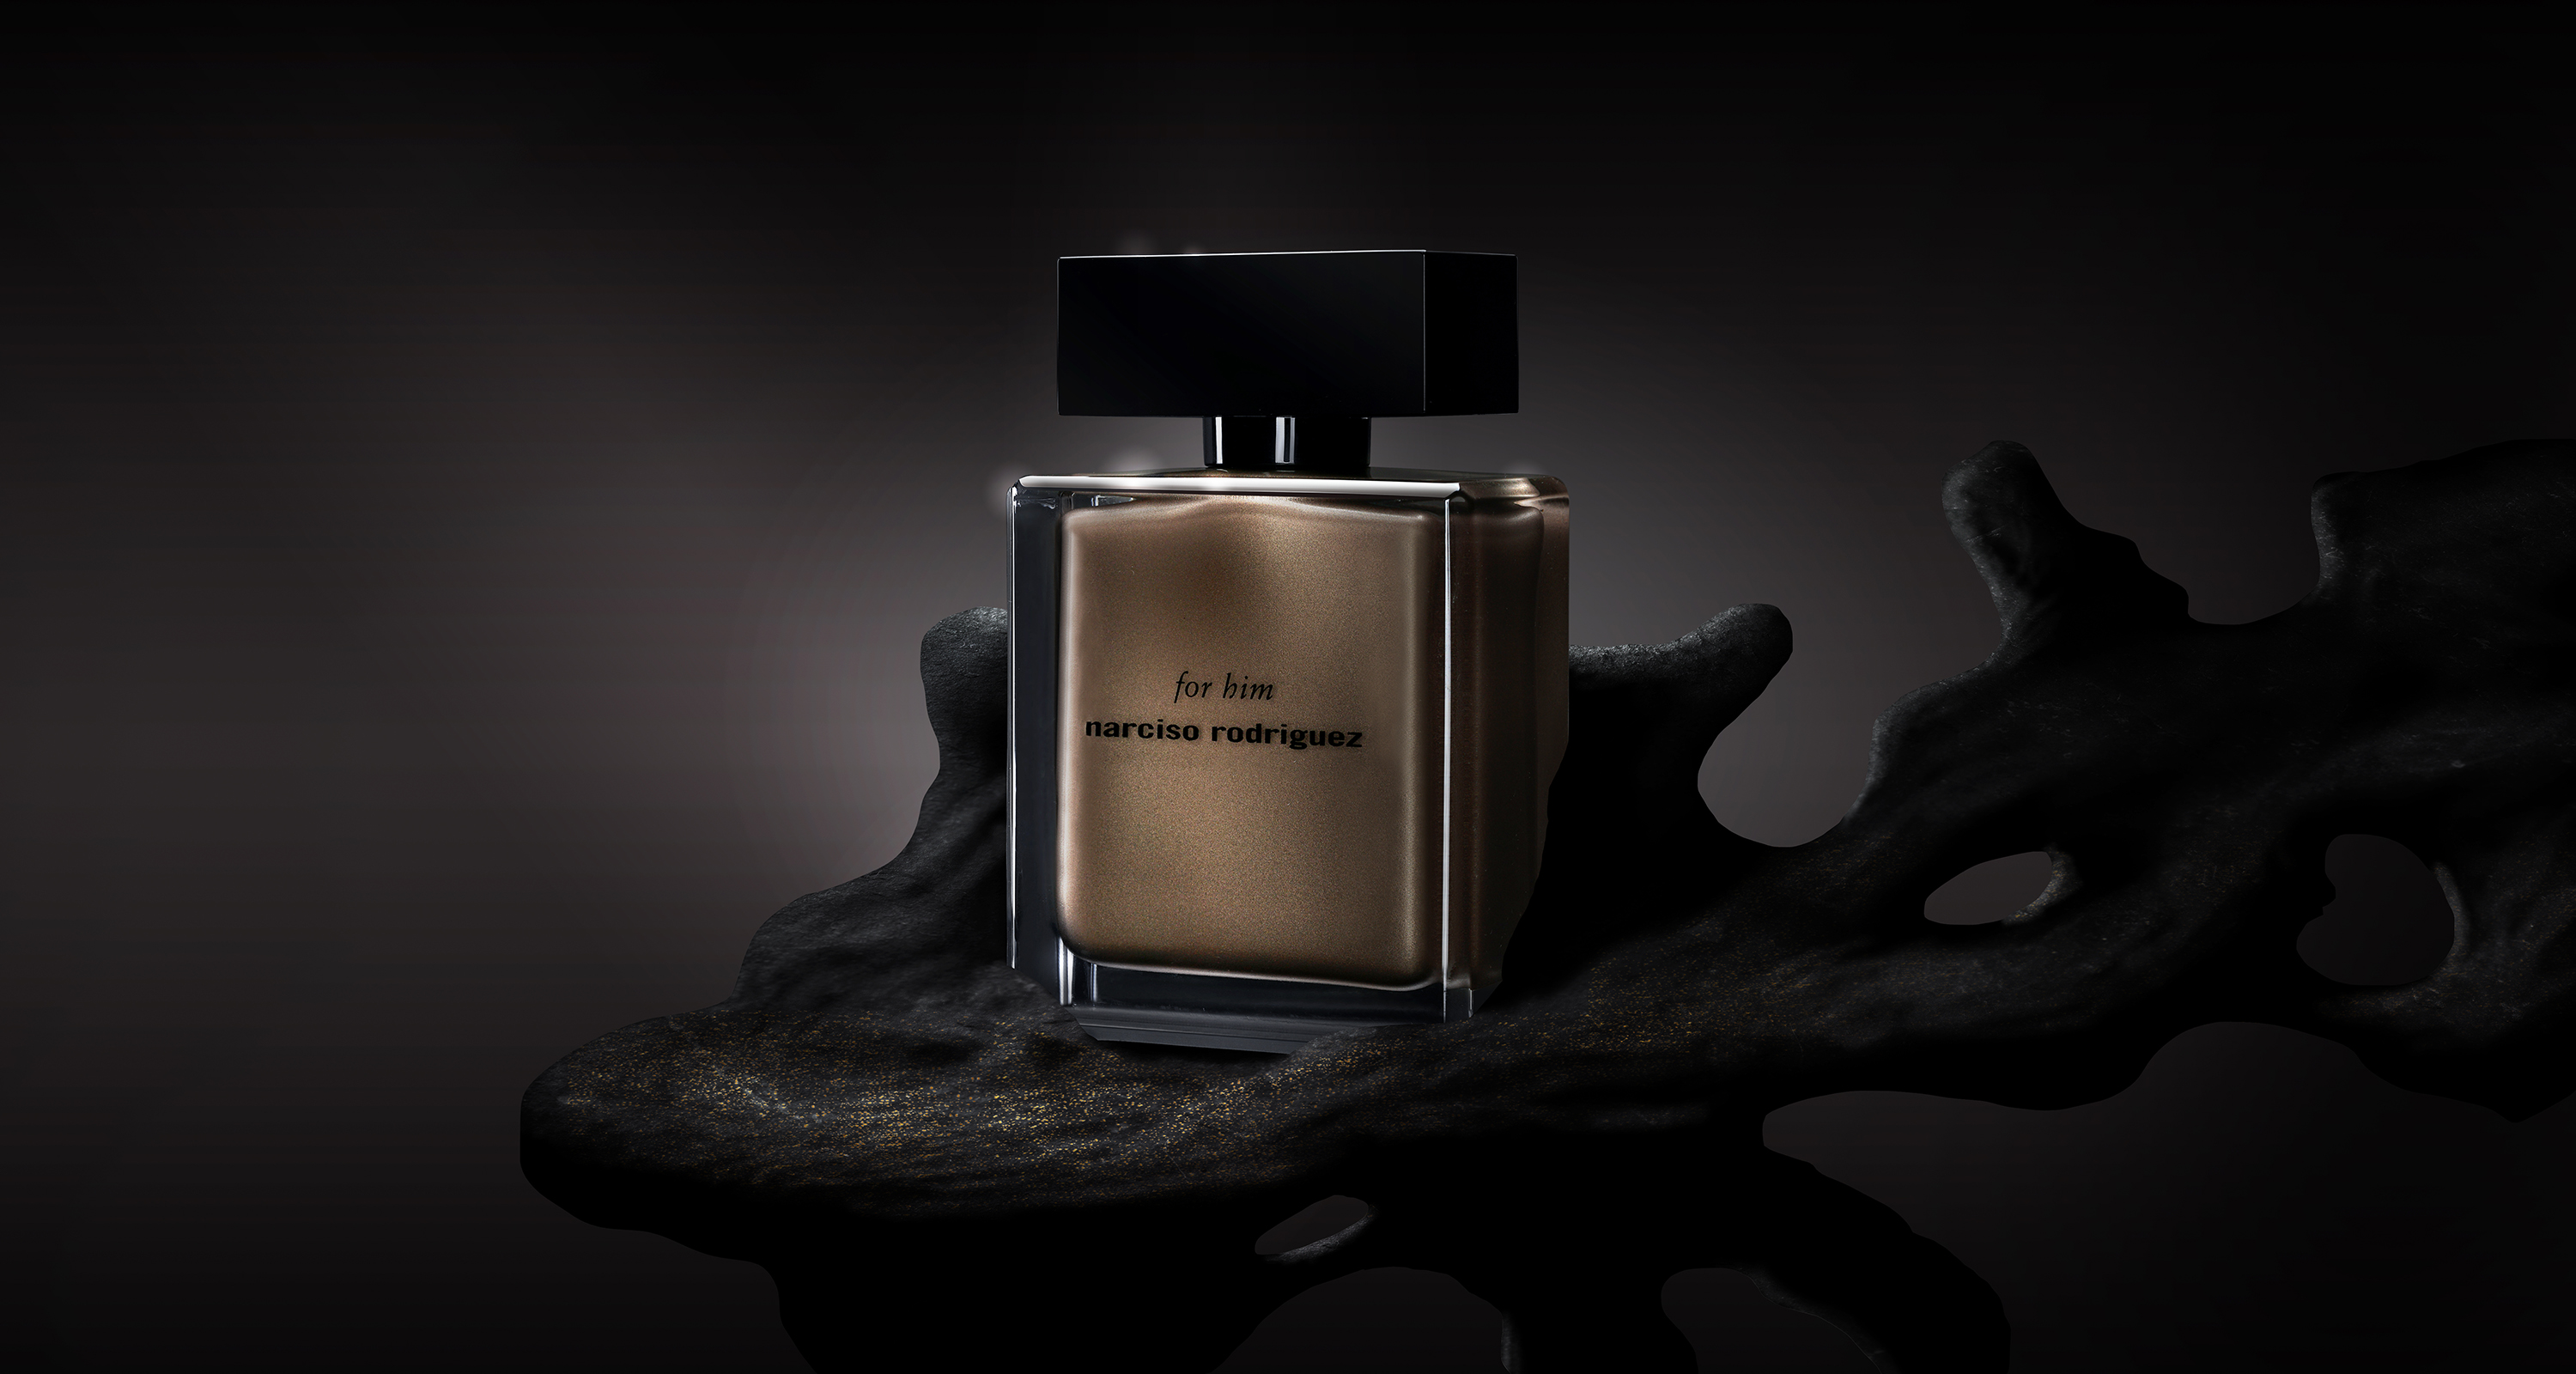 narciso rodriguez for him ad, narciso rodriguez for him photograph